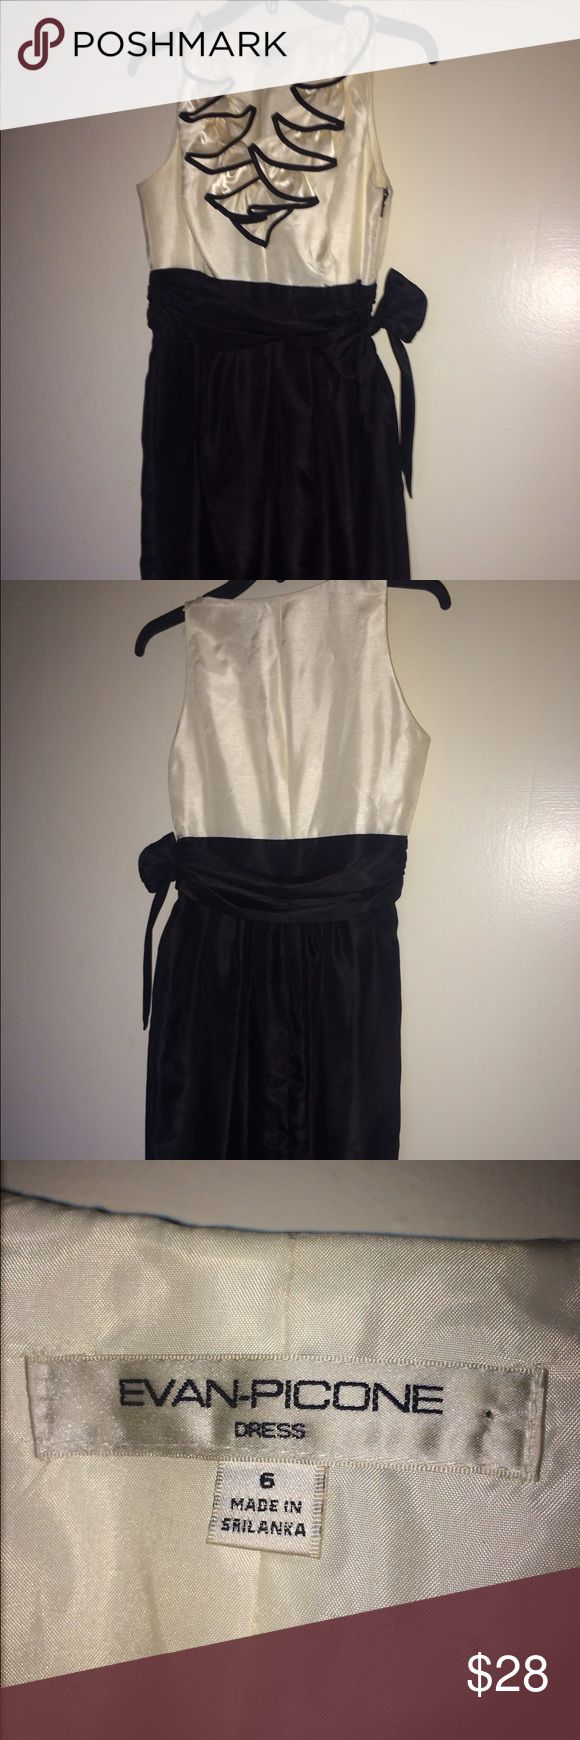 Beautiful Special Occasion Dress! Beautiful black and white special occasion dress! Great condition! Knee length, zipper up side and ties at side. Love the ruffles! Size 6 Evan Picone Dresses